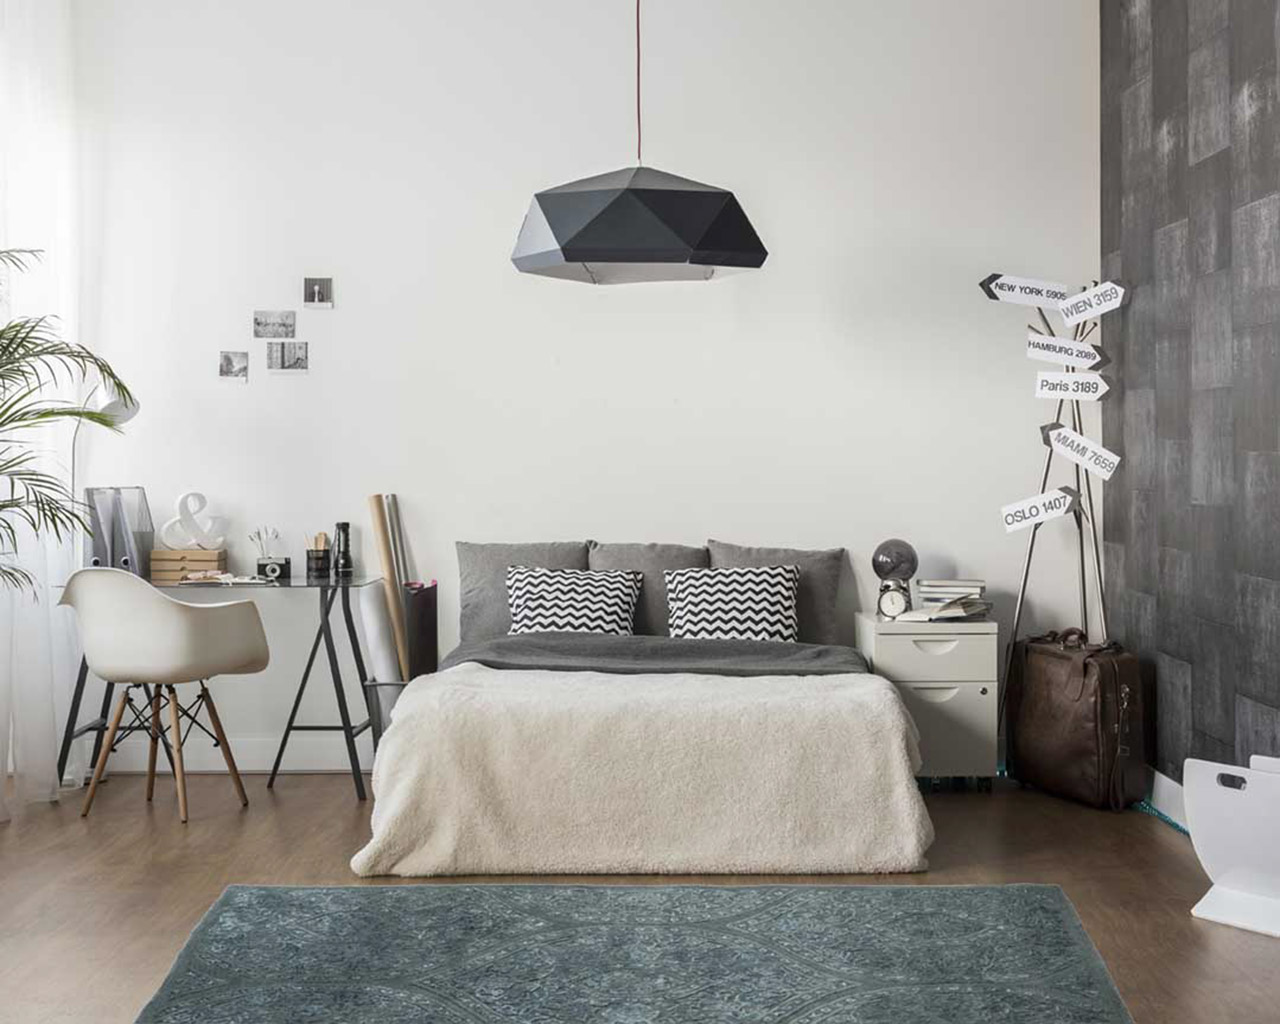 moderne main huppee tapis chambre conception